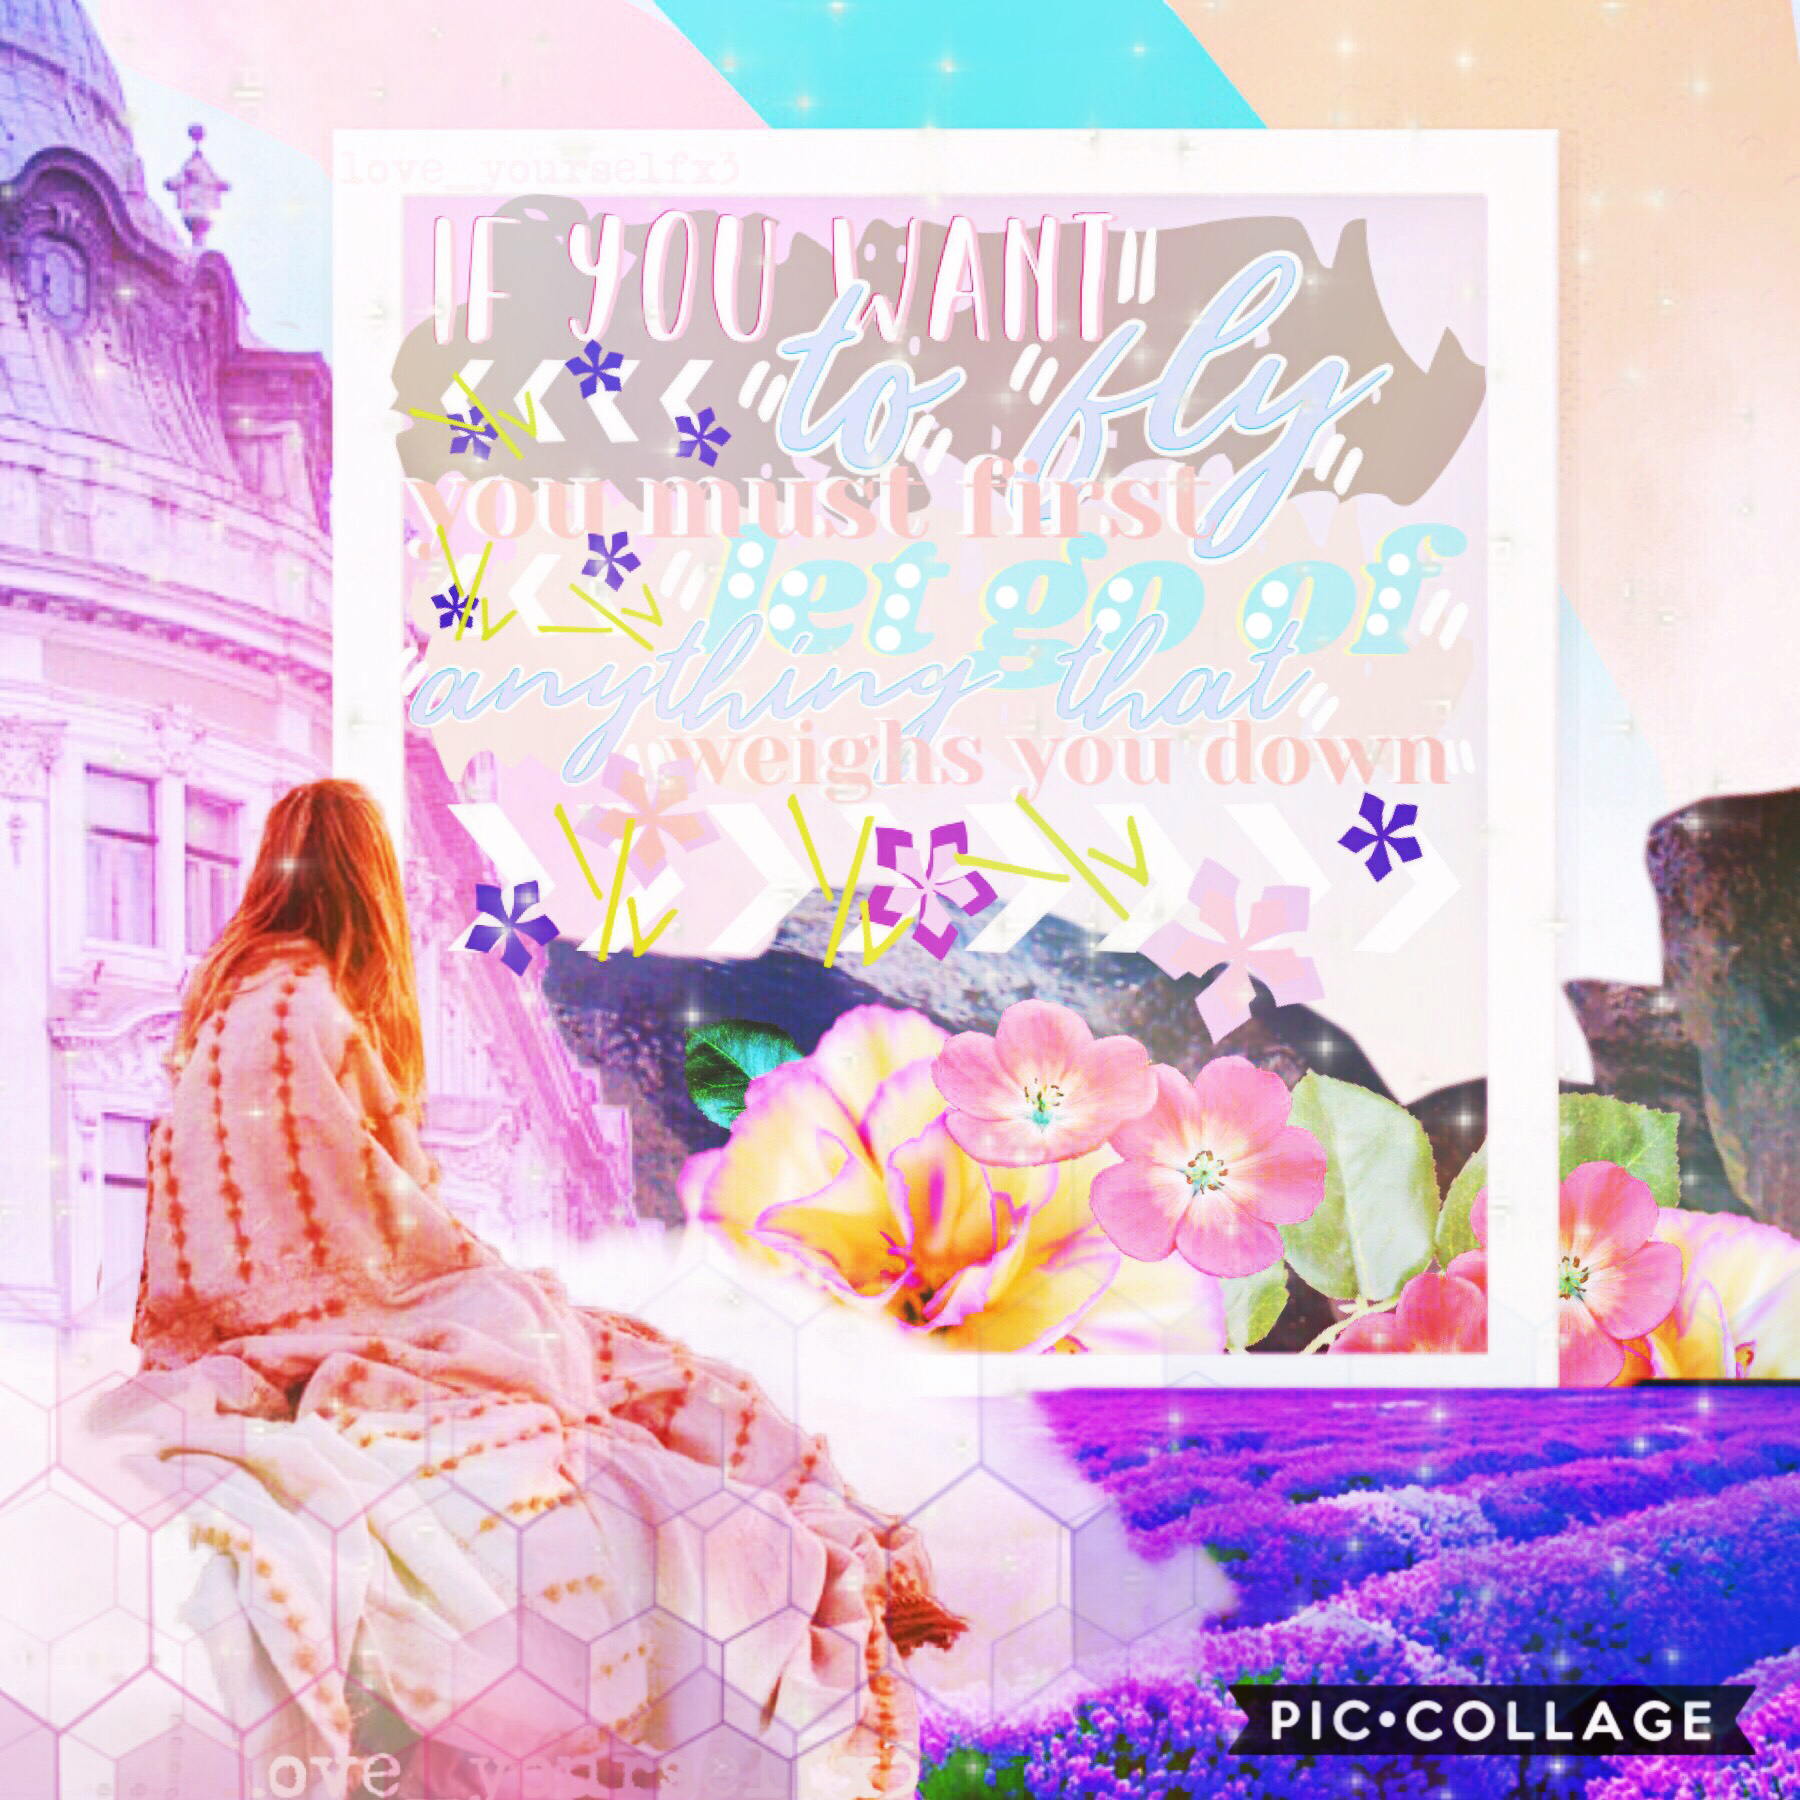 Was feeling stressed so here you go~ (Tap!)  Oof I feel like my edits aren't rly original, agh I'm overrated honestly 😩 also oMg there is no contrast whatsoever but I was doing this to relax so I Guess the colour scheme makes sense  qotd ⬇️⬇️